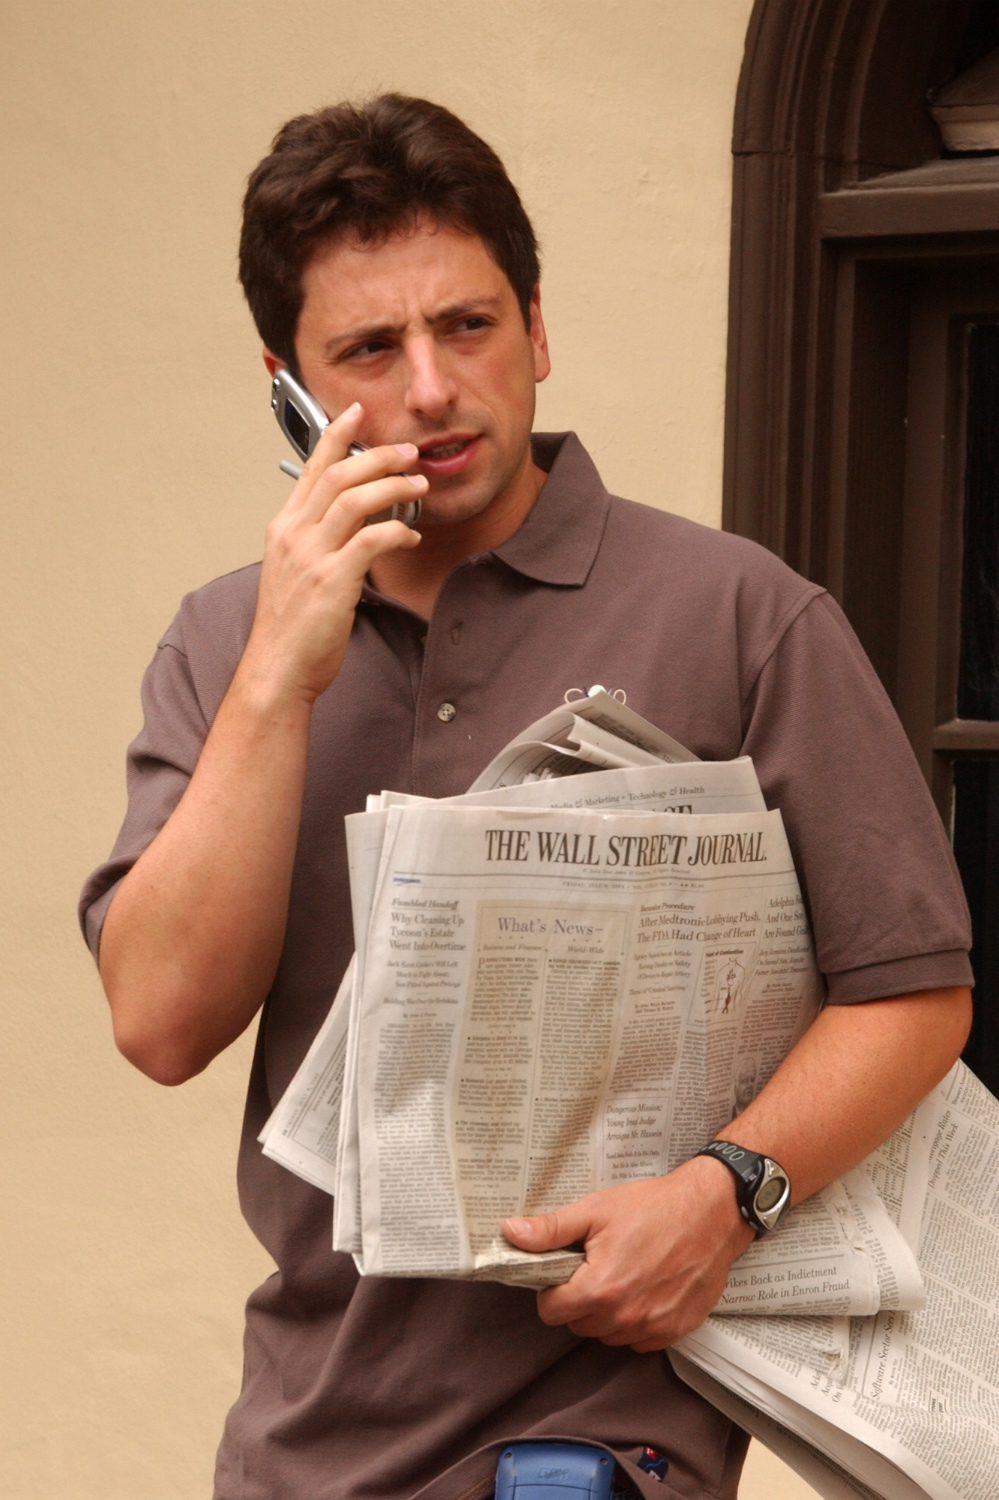 Google co-founder Sergey Brin in July 2004, a few months after Gmail's debut